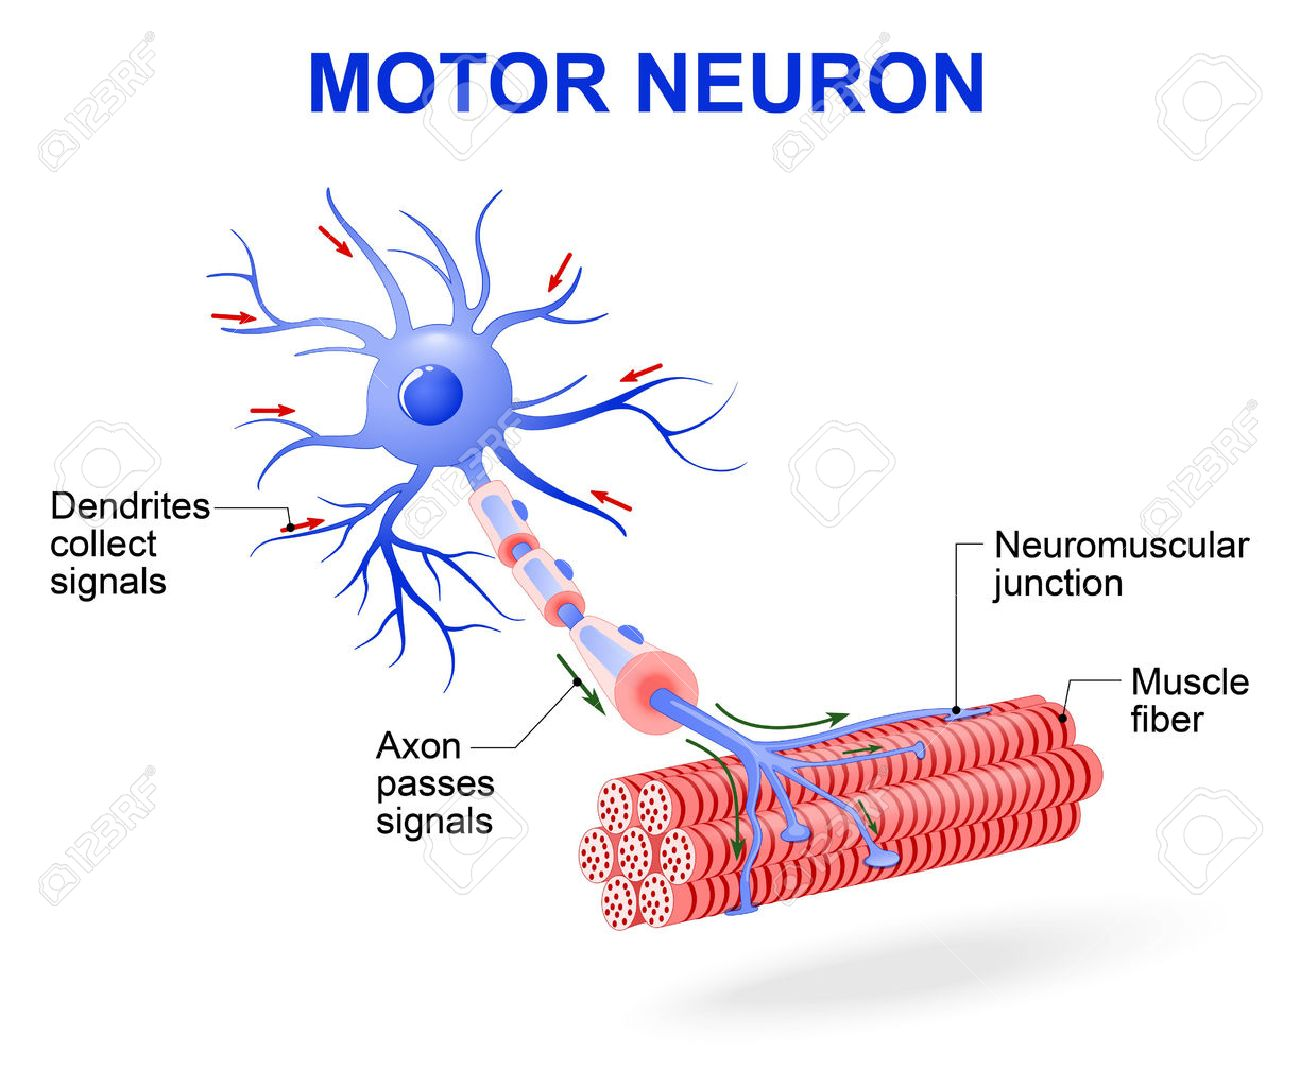 Neuron stock photos royalty free neuron images structure of motor neuron vector diagram include dendrites cell body with nucleus ccuart Choice Image